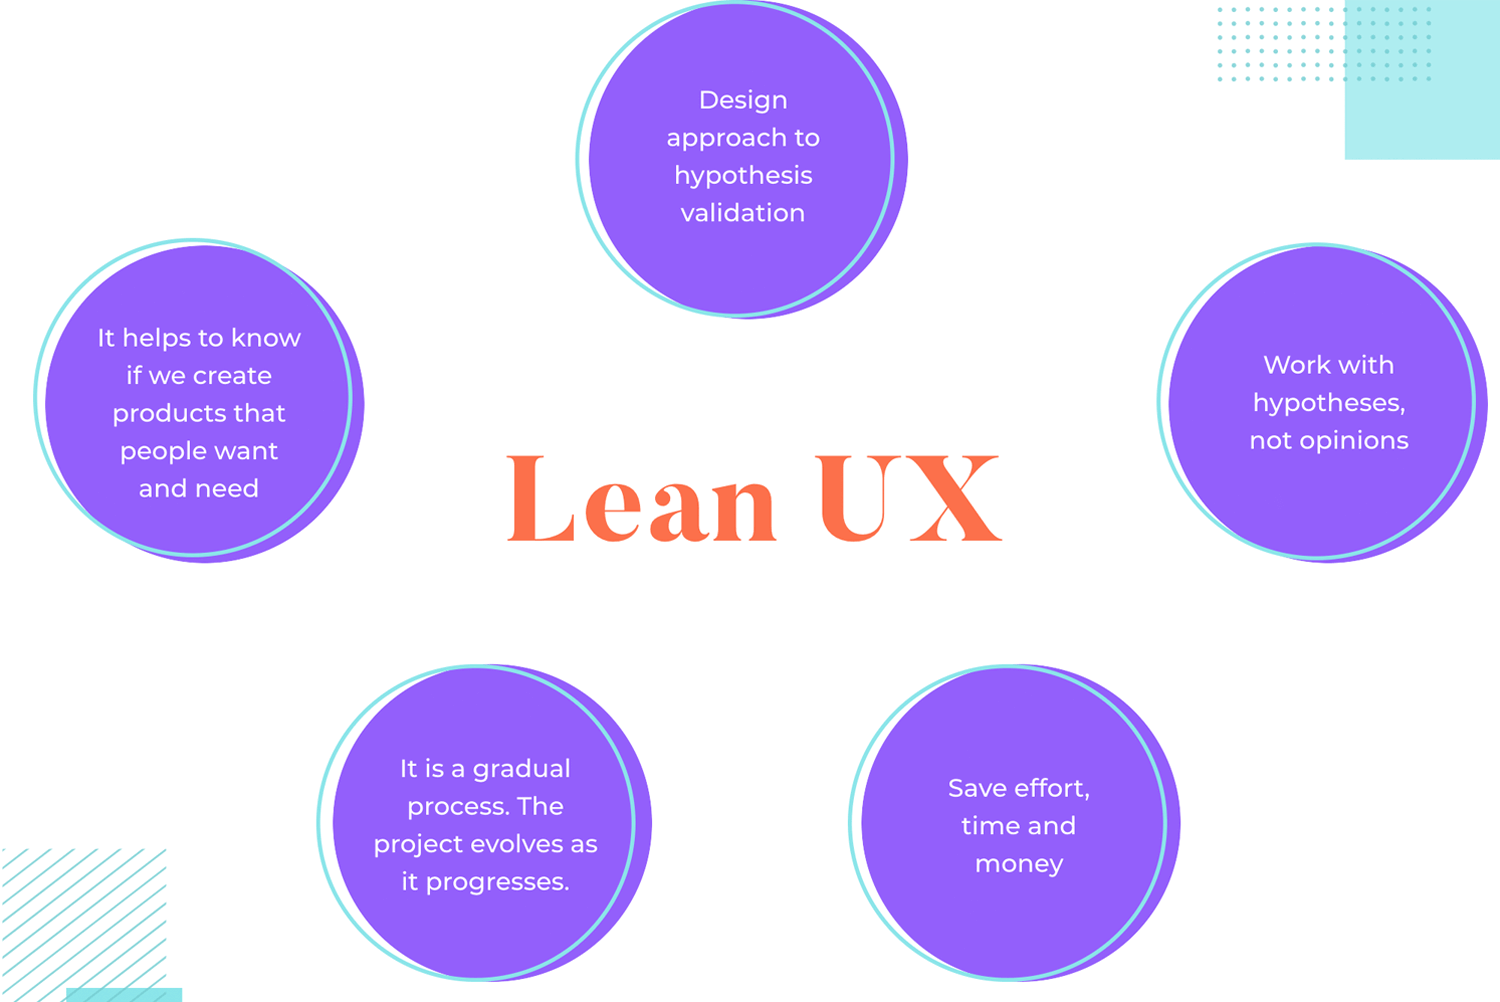 explanation of what Lean UX is